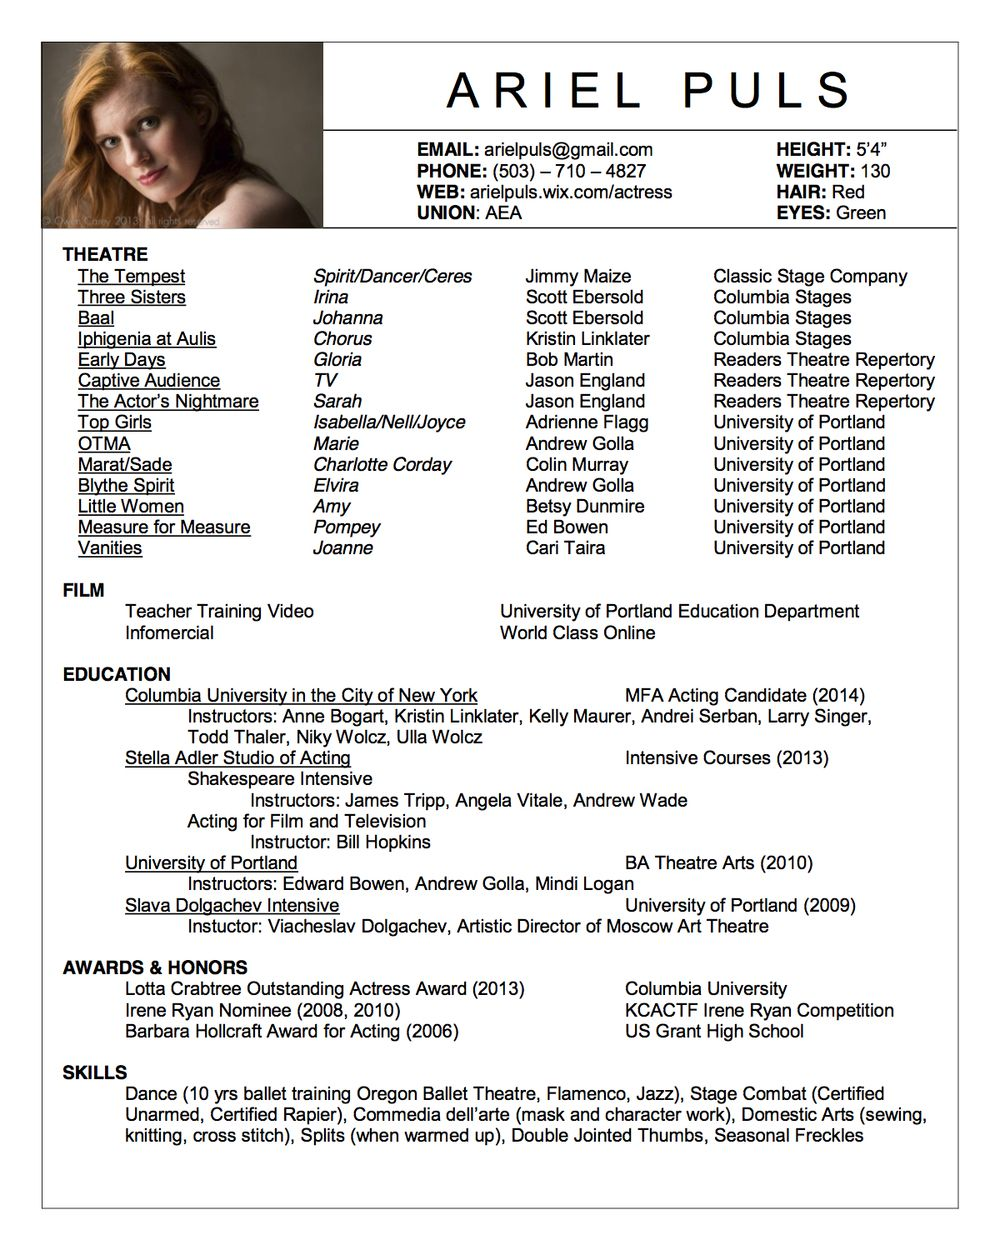 32 Brilliant Celebrity and Celebrity Wannabe Actors' Resumes